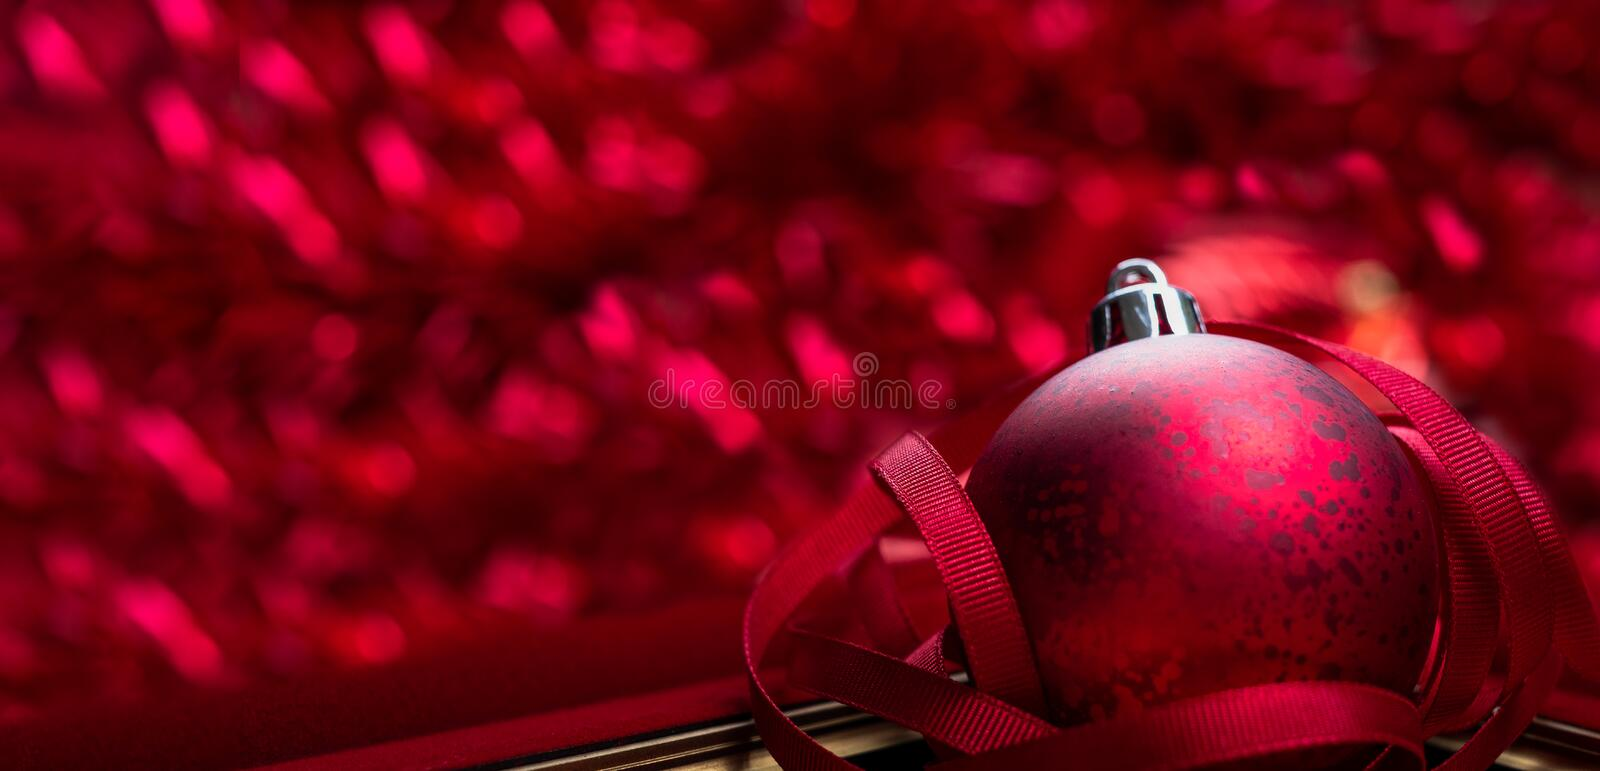 Merry christmas and happy new year red background.close up red decoration ball with blur tinsel at background.holiday celebration royalty free stock photography